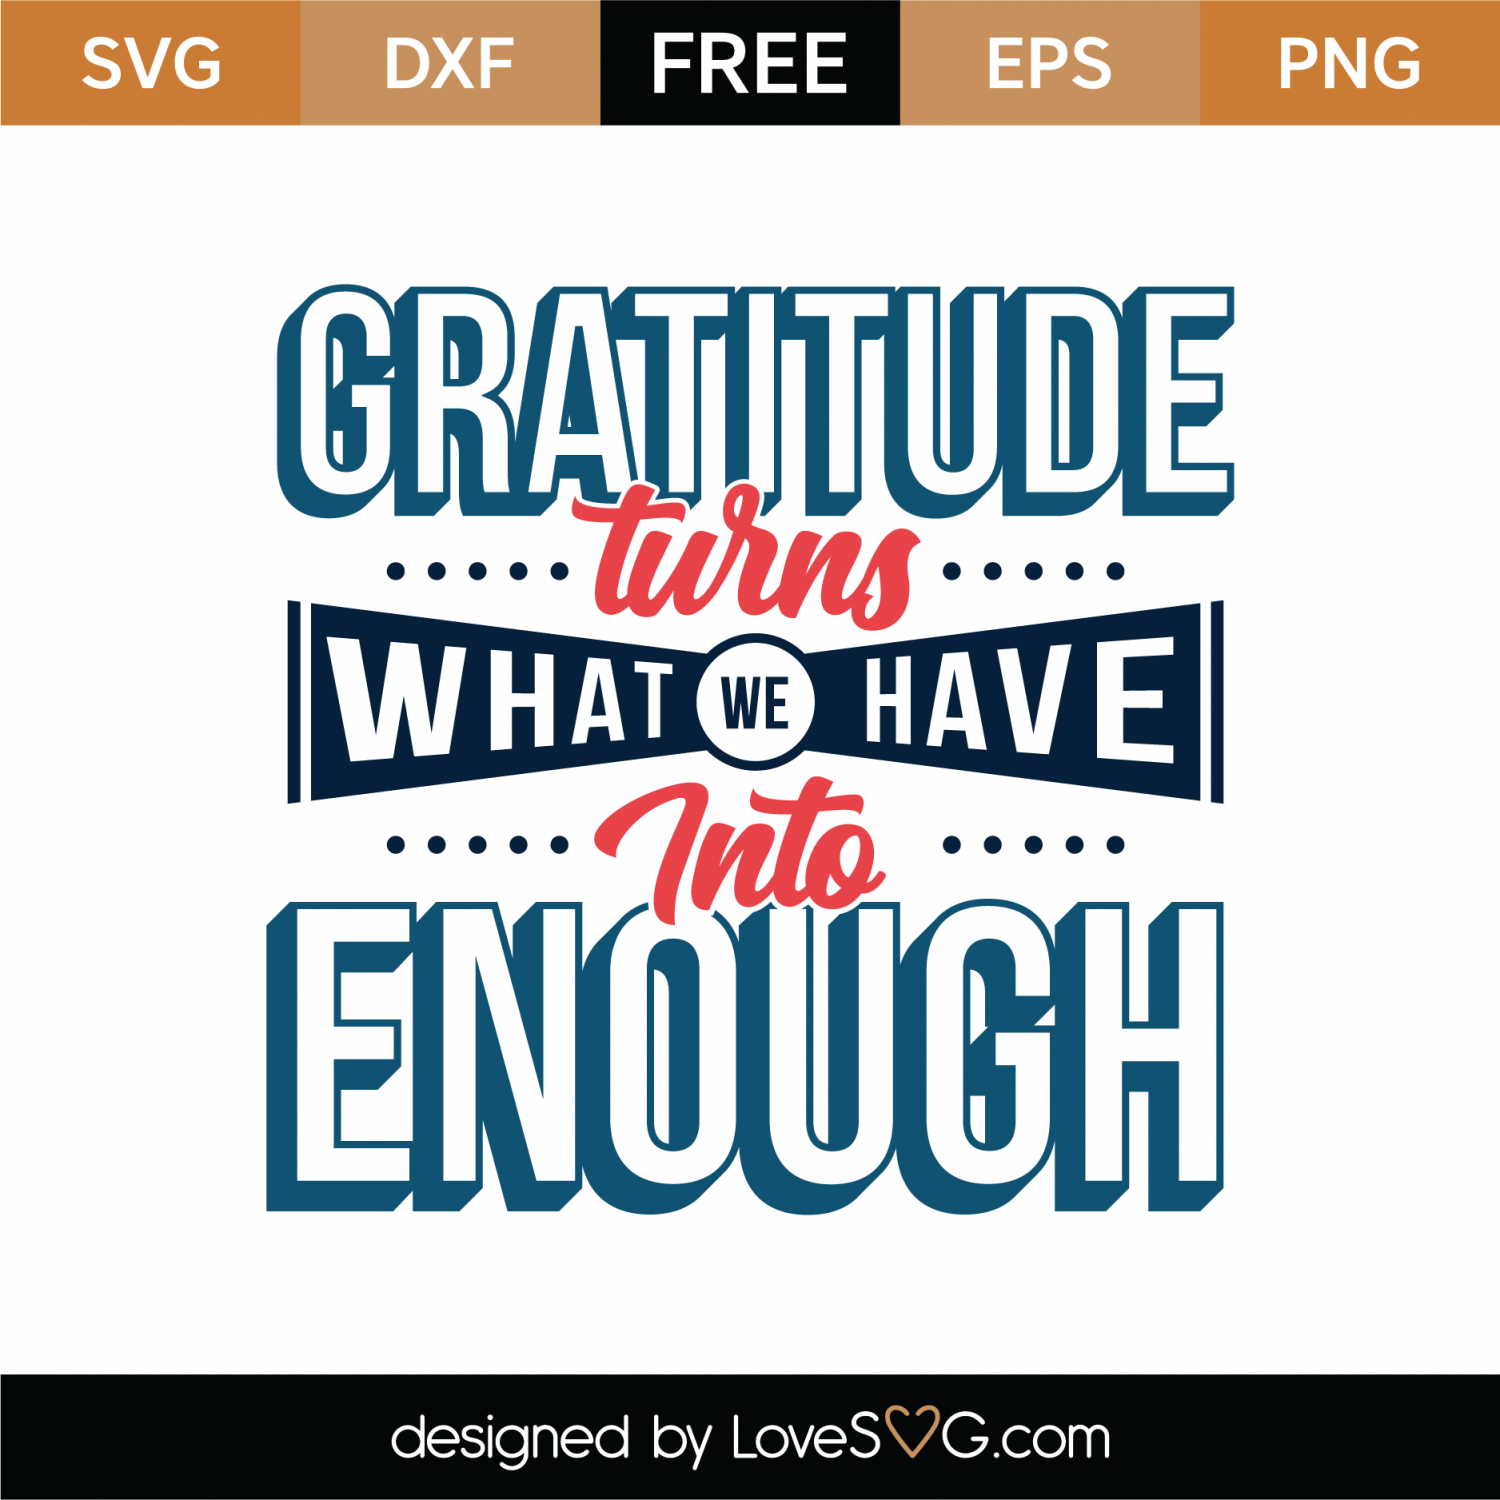 Free Gratitude Turns What We Have Into Enough SVG Cut File | Lovesvg com